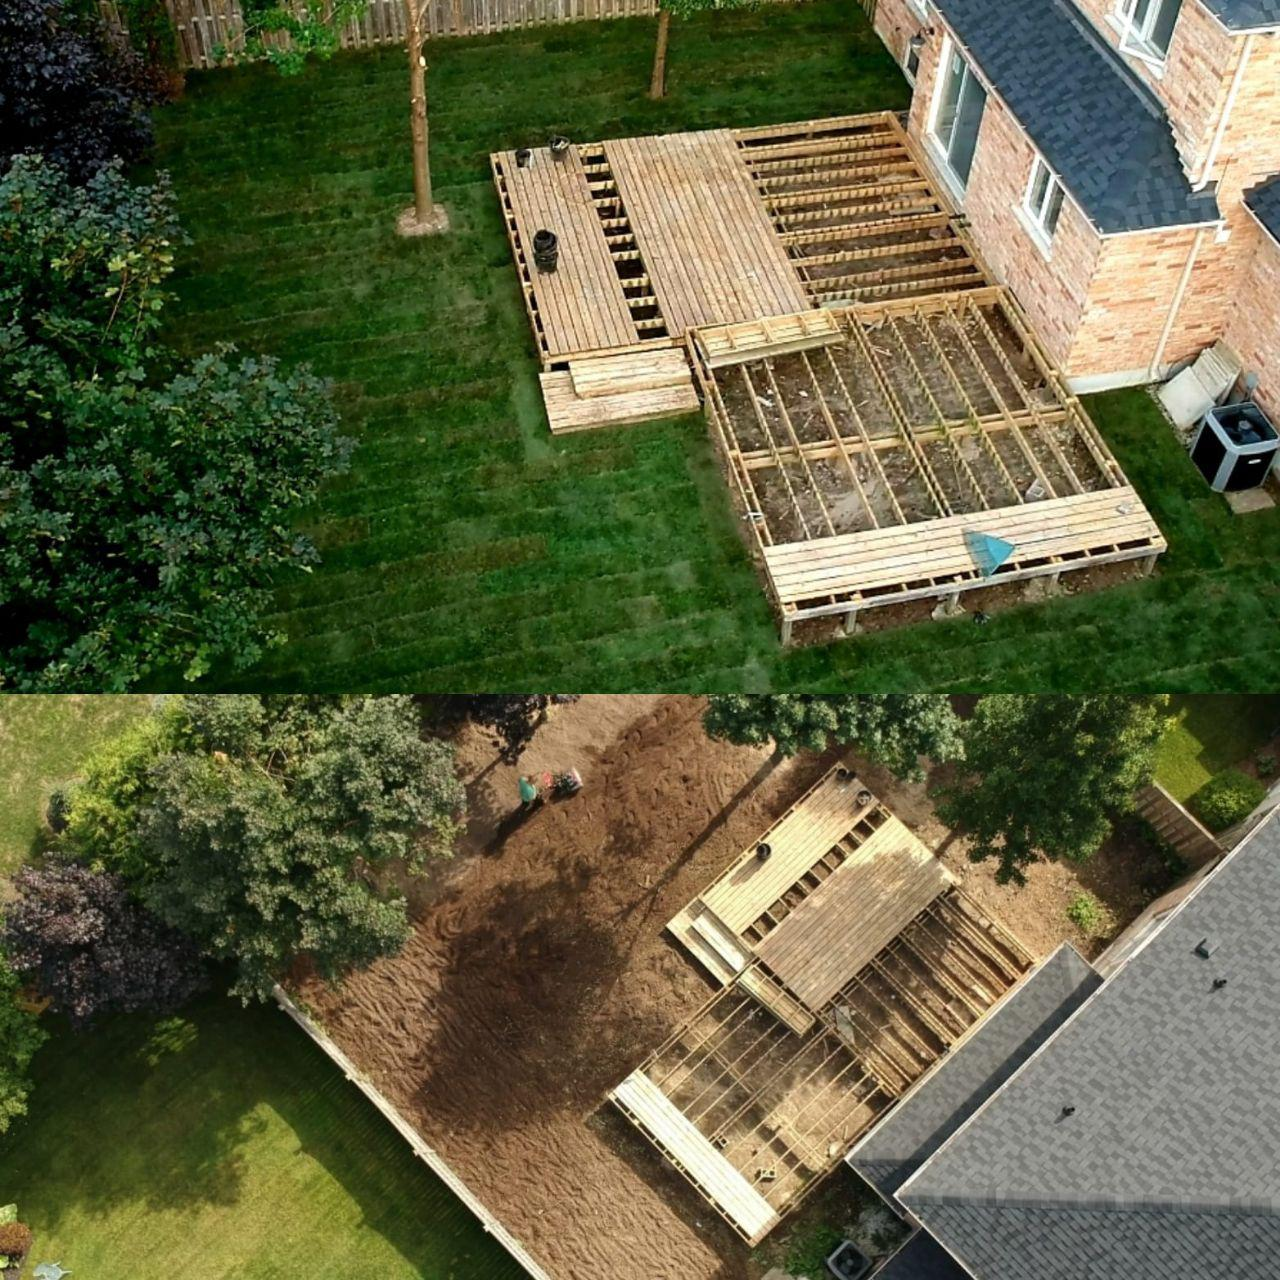 sodding before and after from drone